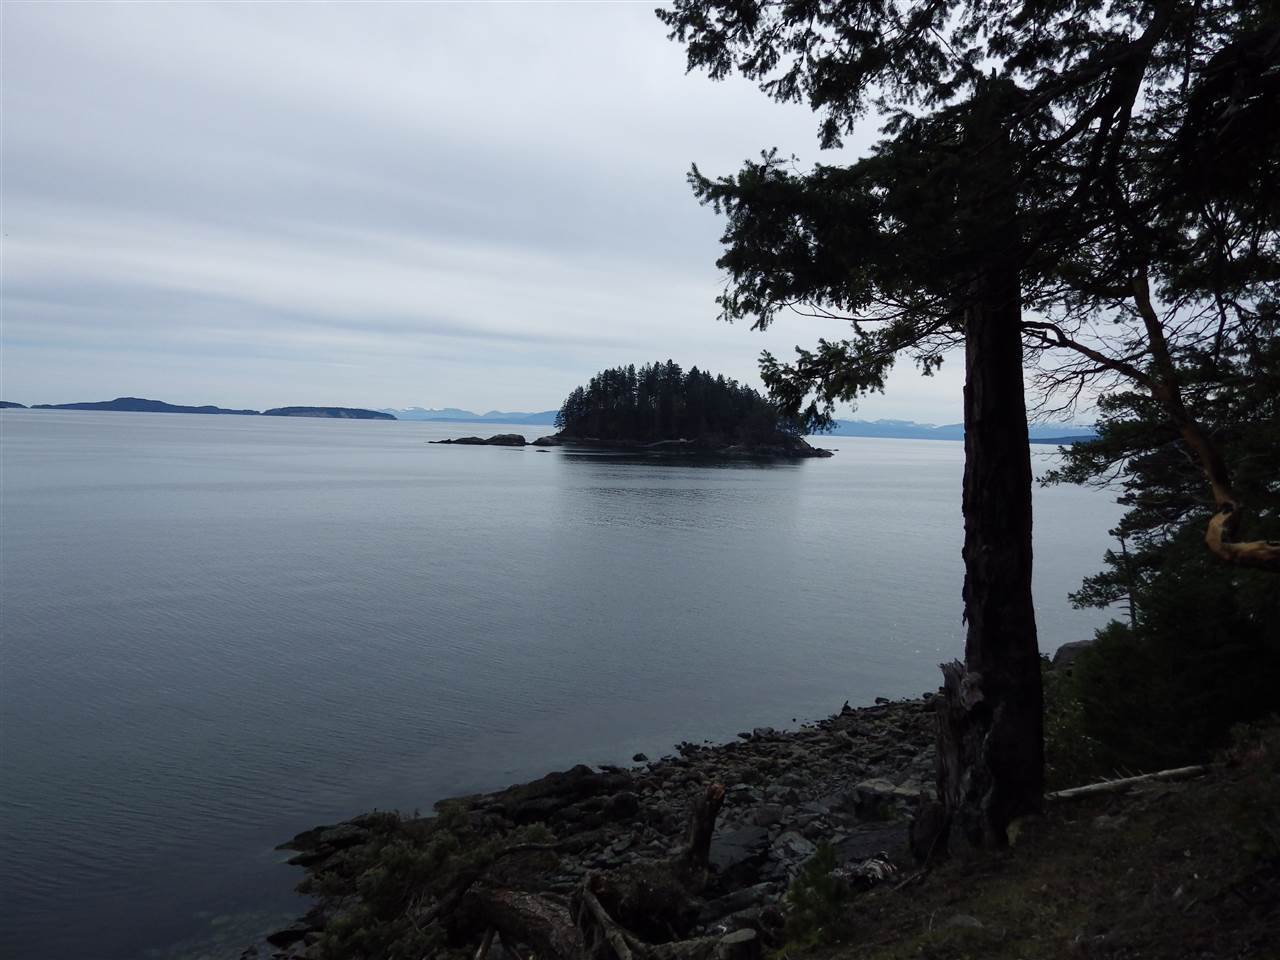 Main Photo: LOT 4 ARBUTUS Landing in Pender Harbour: Pender Harbour Egmont Land for sale (Sunshine Coast)  : MLS®# R2144592